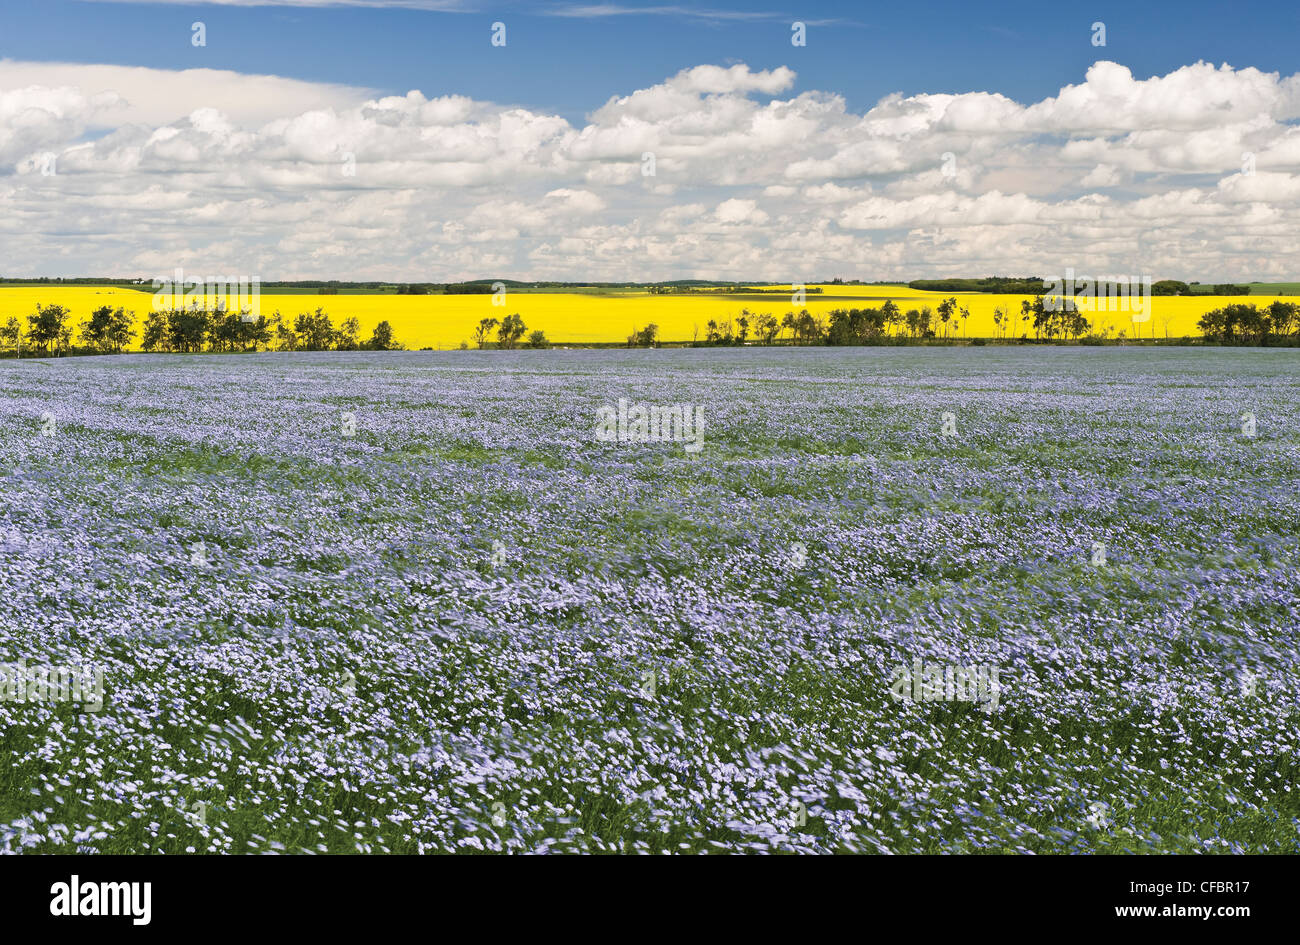 Windblown flowering flax field with canola in the background, Tiger Hills near Somerset, Manitoba, Canada - Stock Image